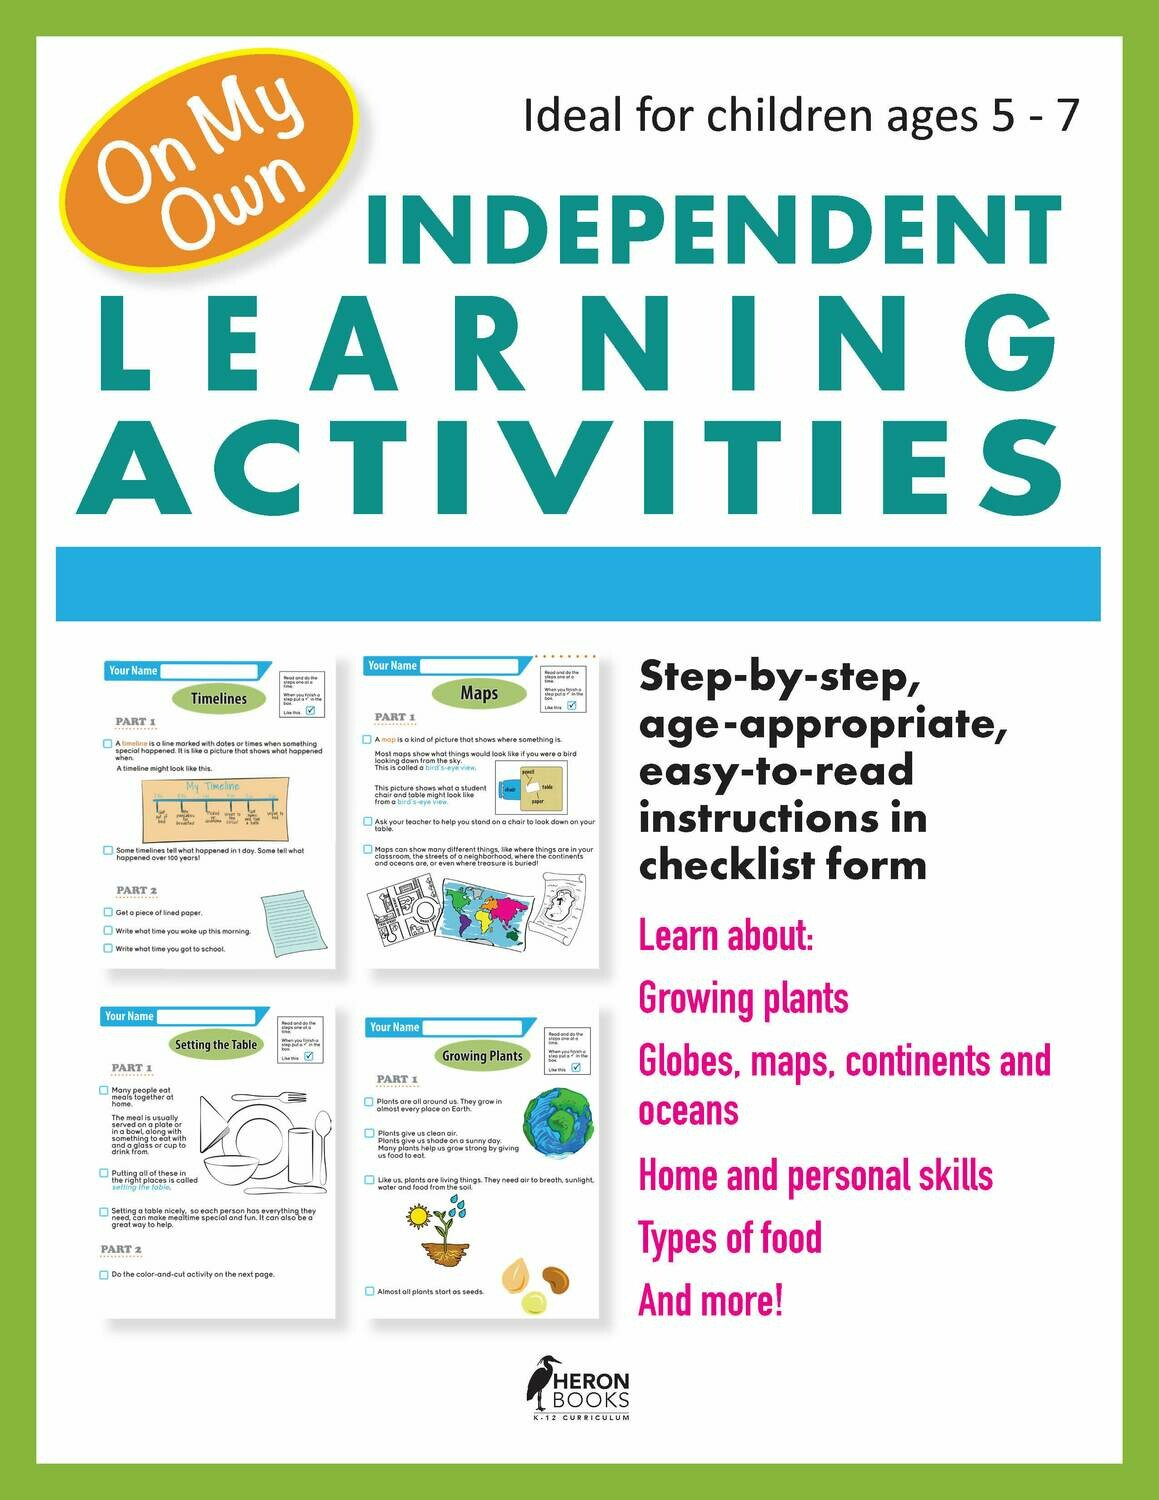 Independent Learning Activities - Free Download!